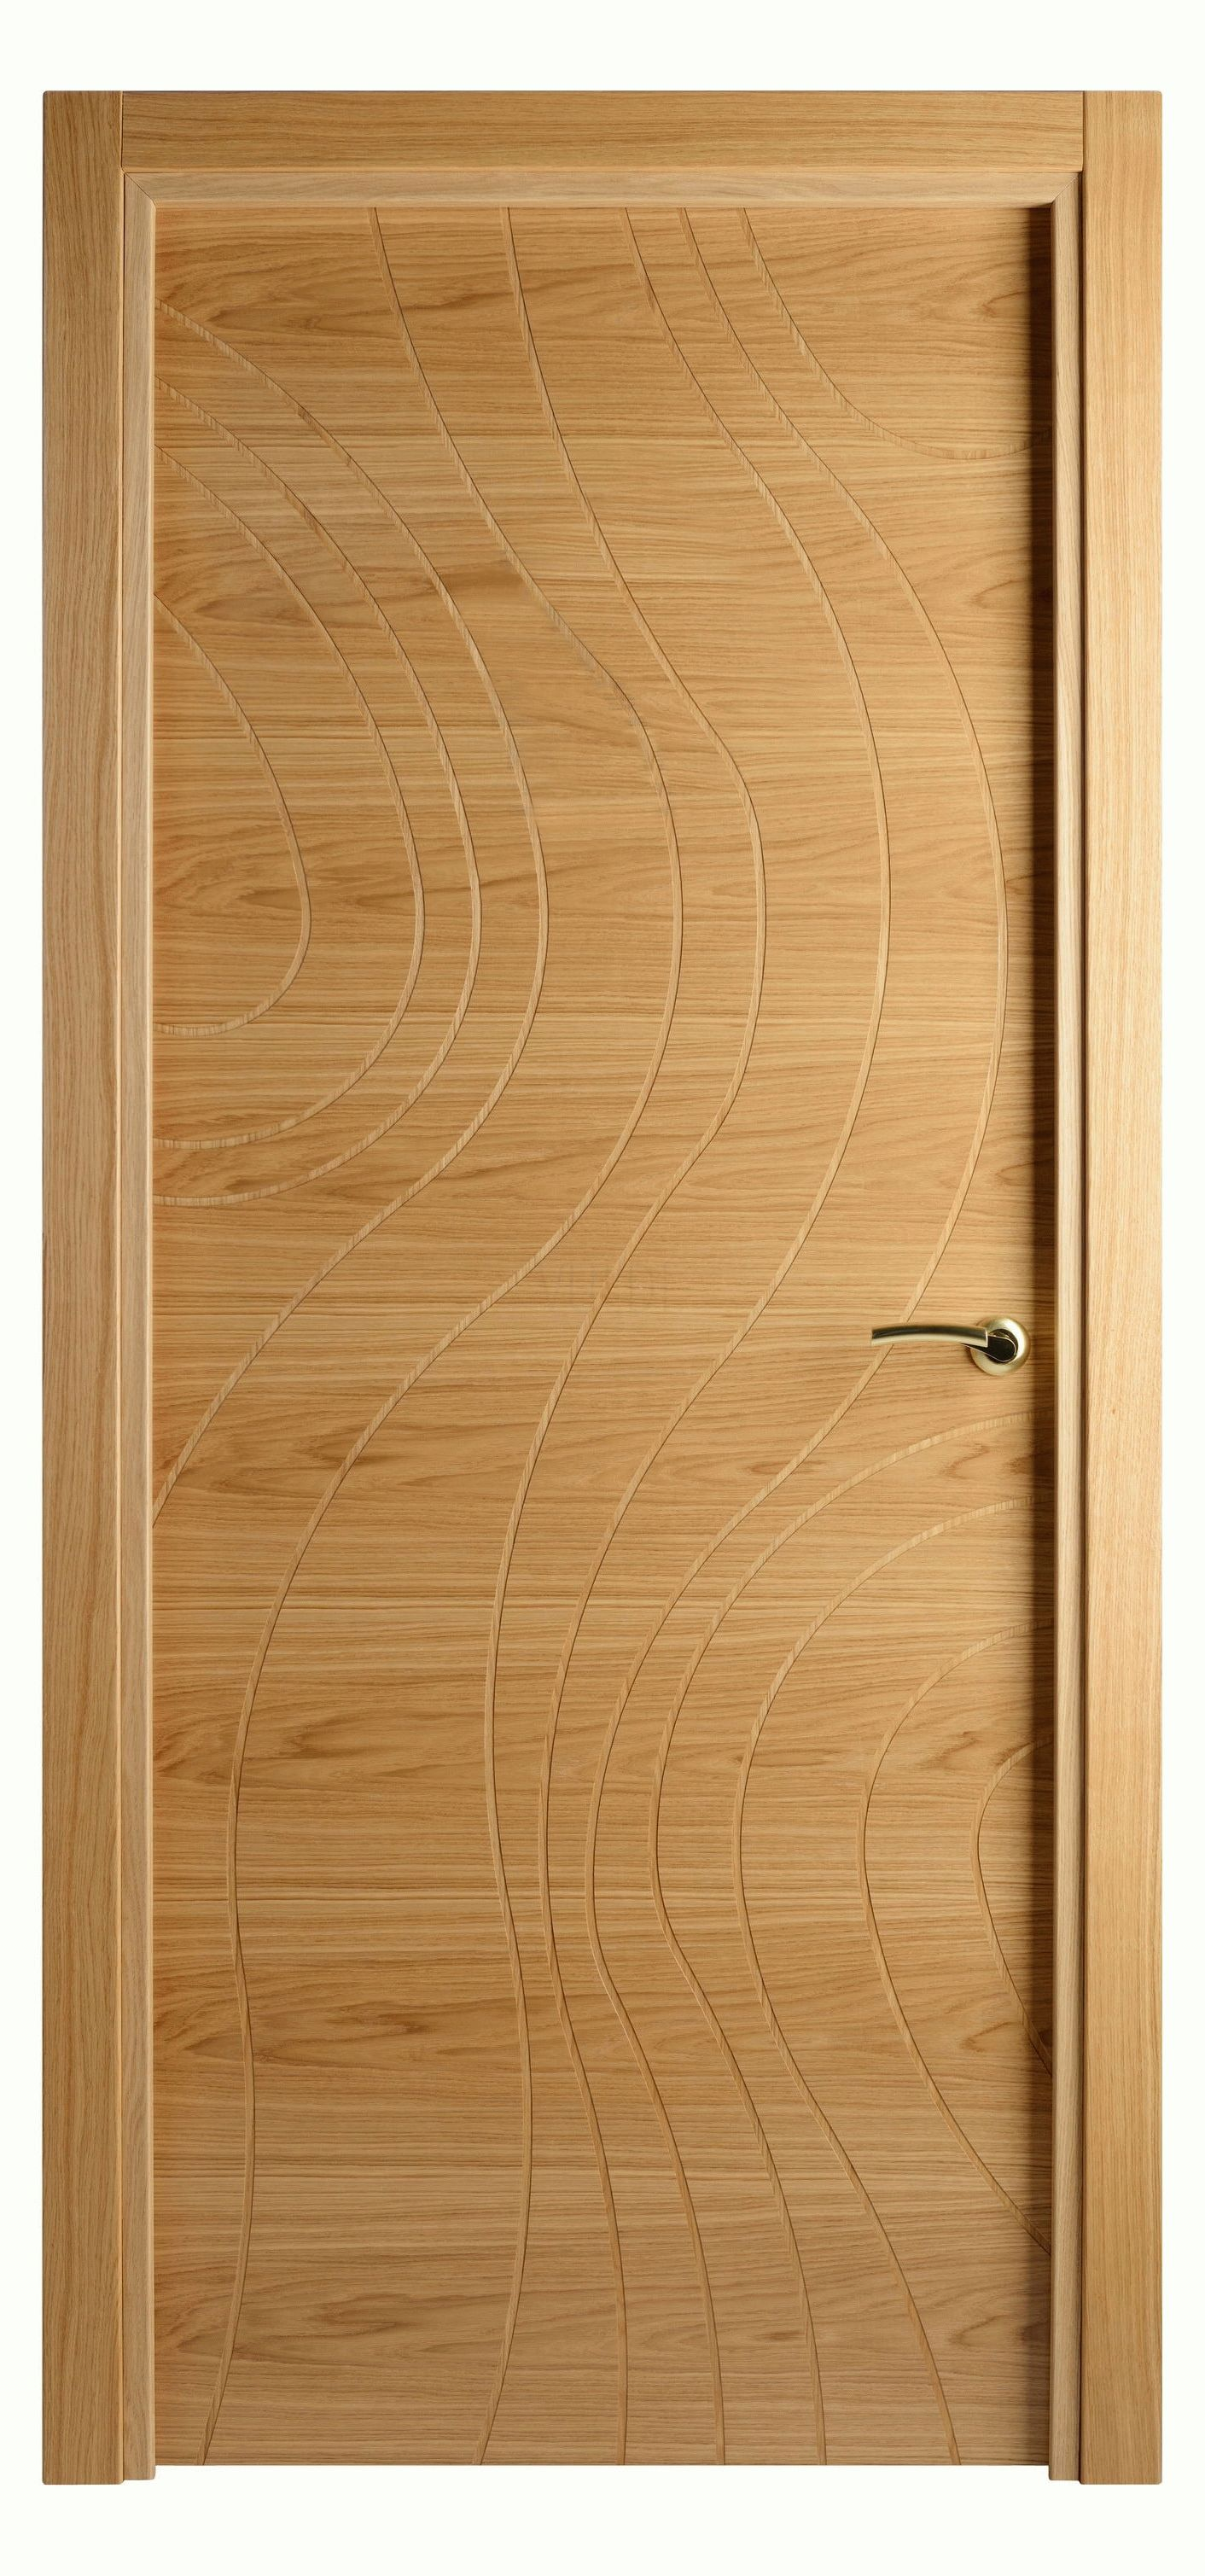 Ego Vento Interior Door Oak Light image from VULDI COMPANY